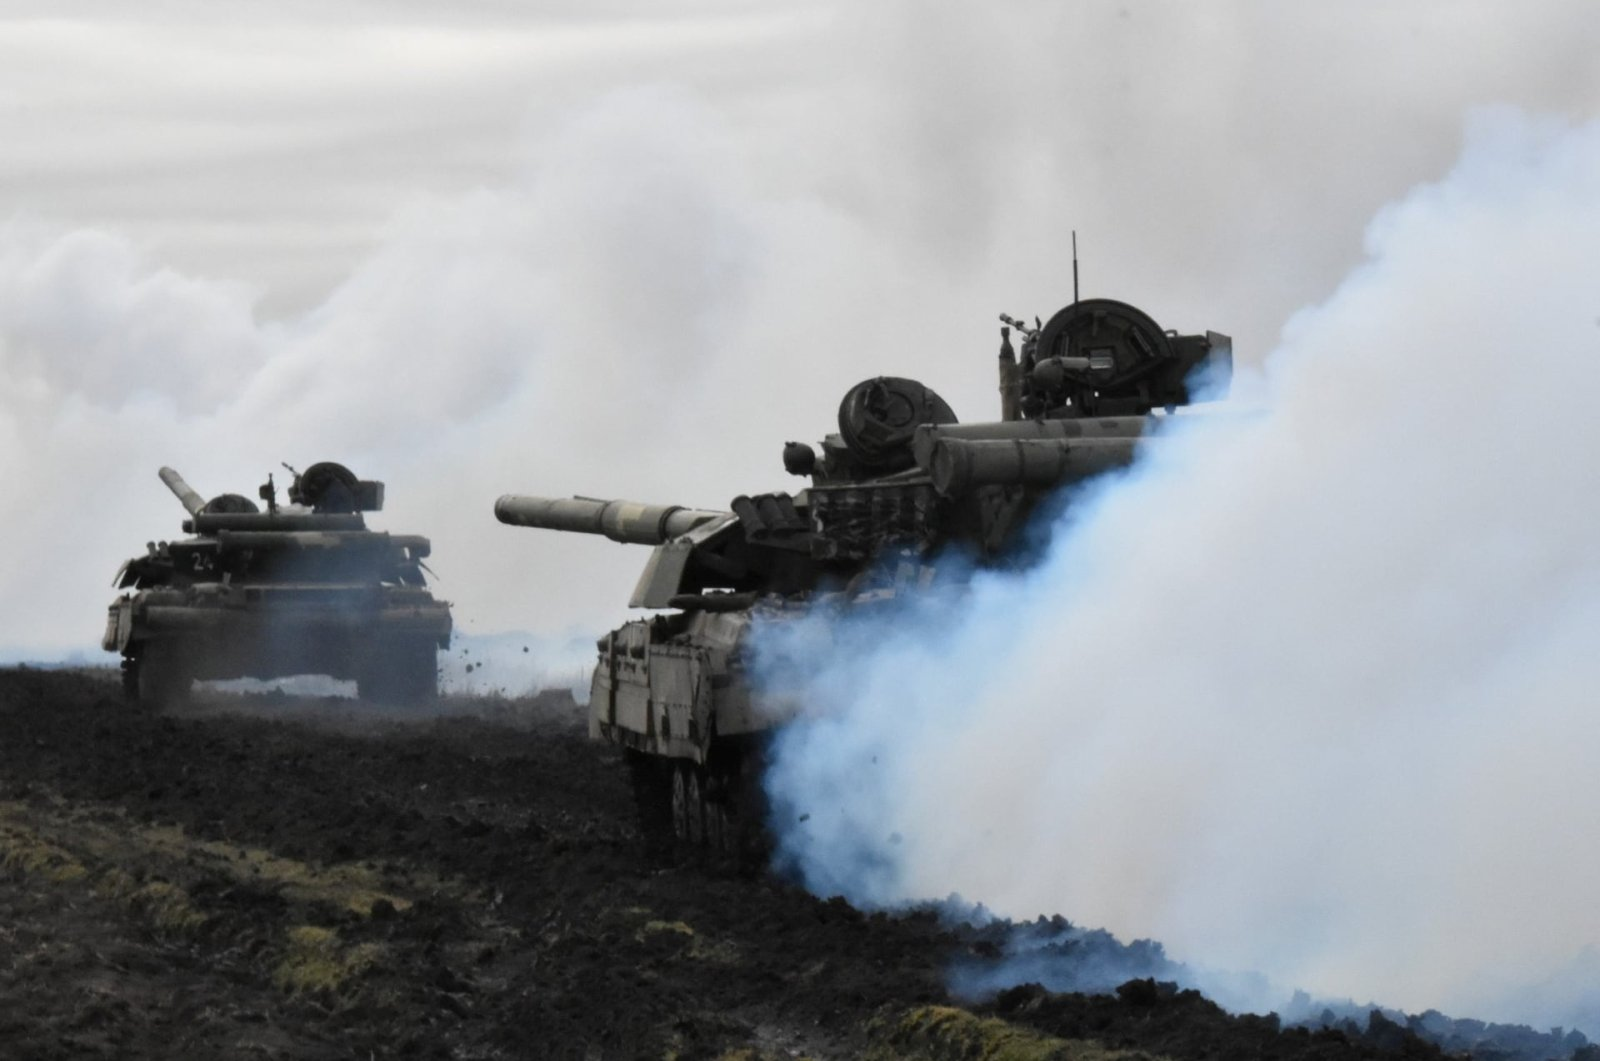 Tanks of the Ukrainian Armed Forces are seen during drills at an unknown location near the border of Russian-annexed Crimea, Ukraine, April 14, 2021. (General Staff of the Armed Forces of Ukraine press service via Reuters)